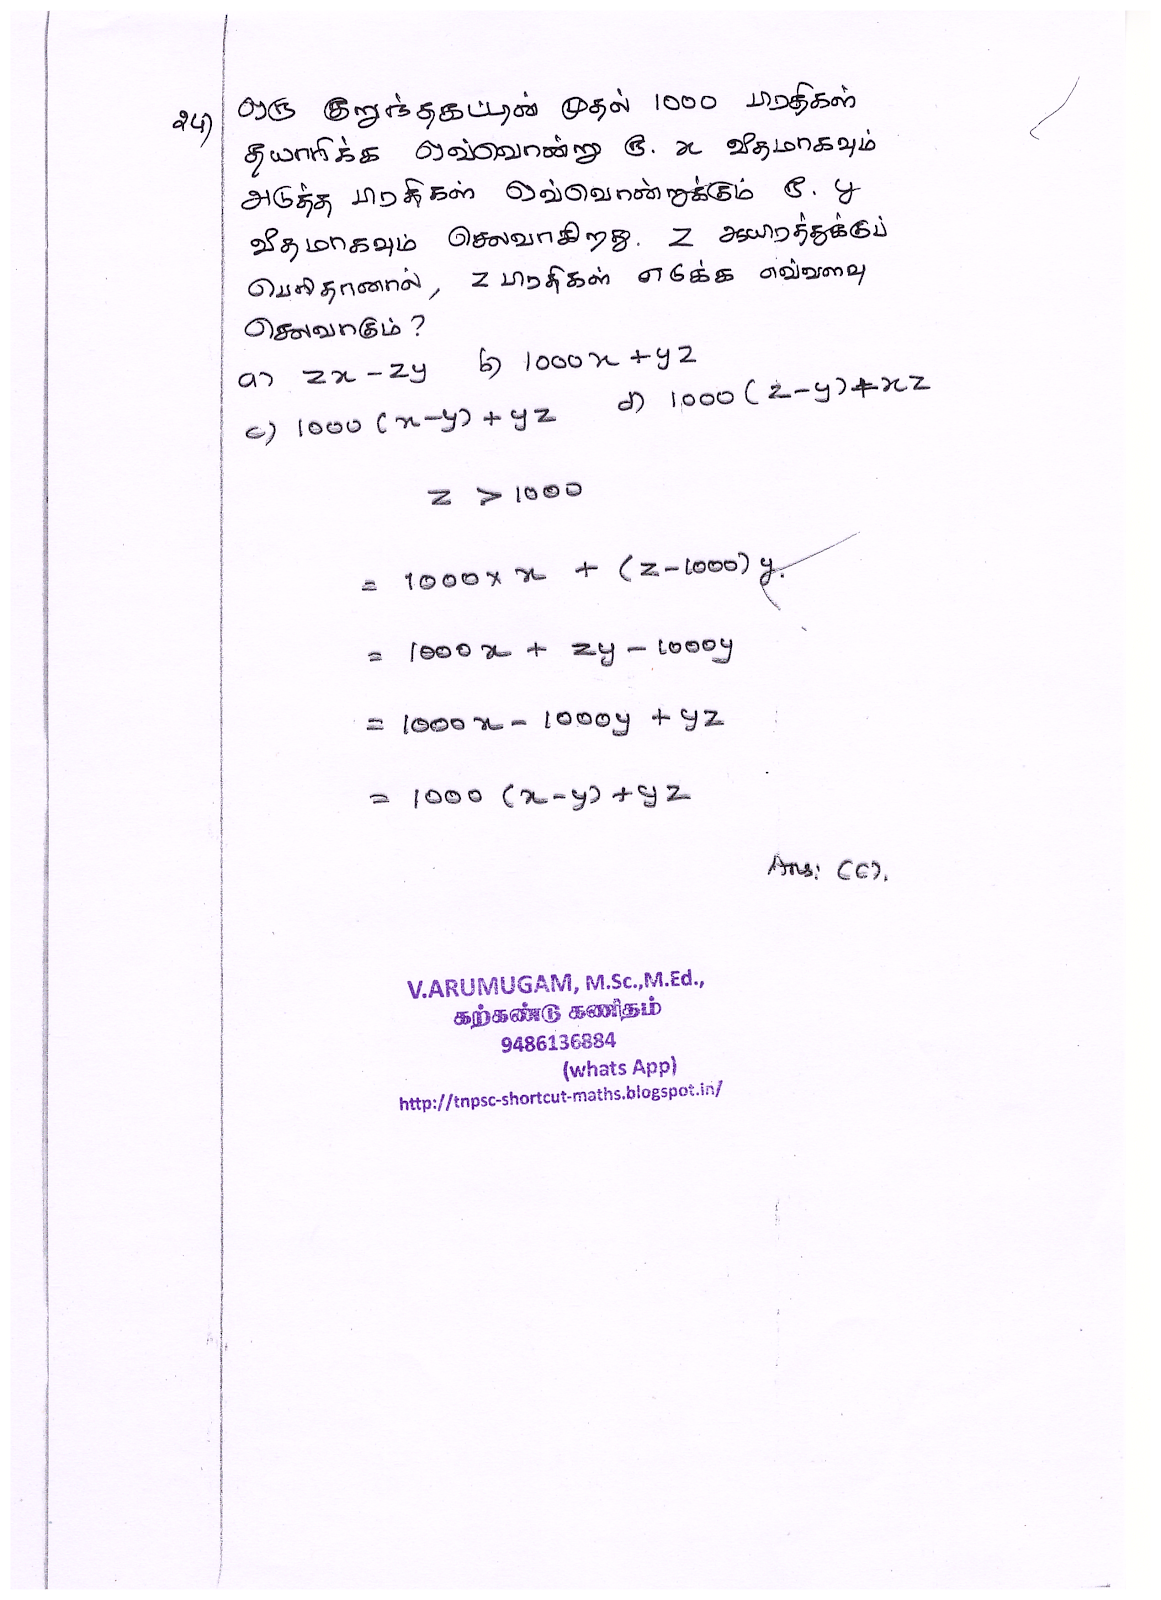 TNPSC – 2019 - Principal, Industrial Training Institute / Assistant Director of Training & Assistant Engineer (Industries) & Cost Assistant in Industries and Commerce Department in the TN Ministerial Service, 2016-2017 EXAM - EXAM DATE: 02.03.2019